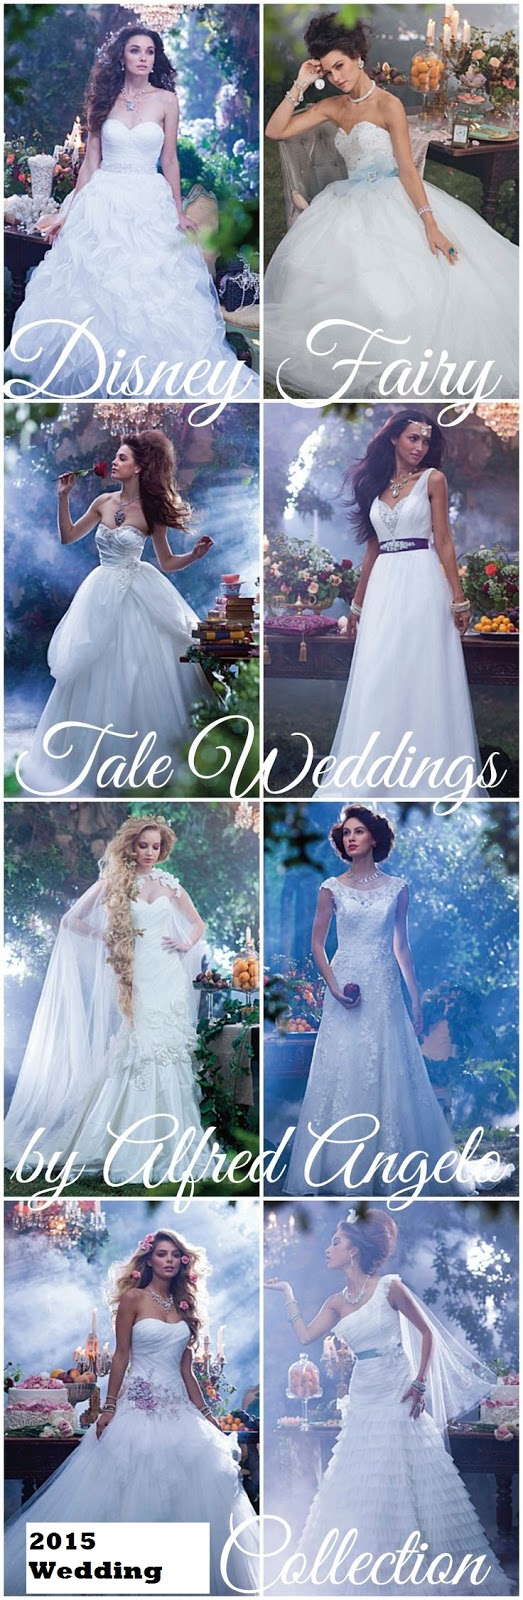 8 Wedding Dresses Sure to Bring Out Your Inner # Princess # Wedding